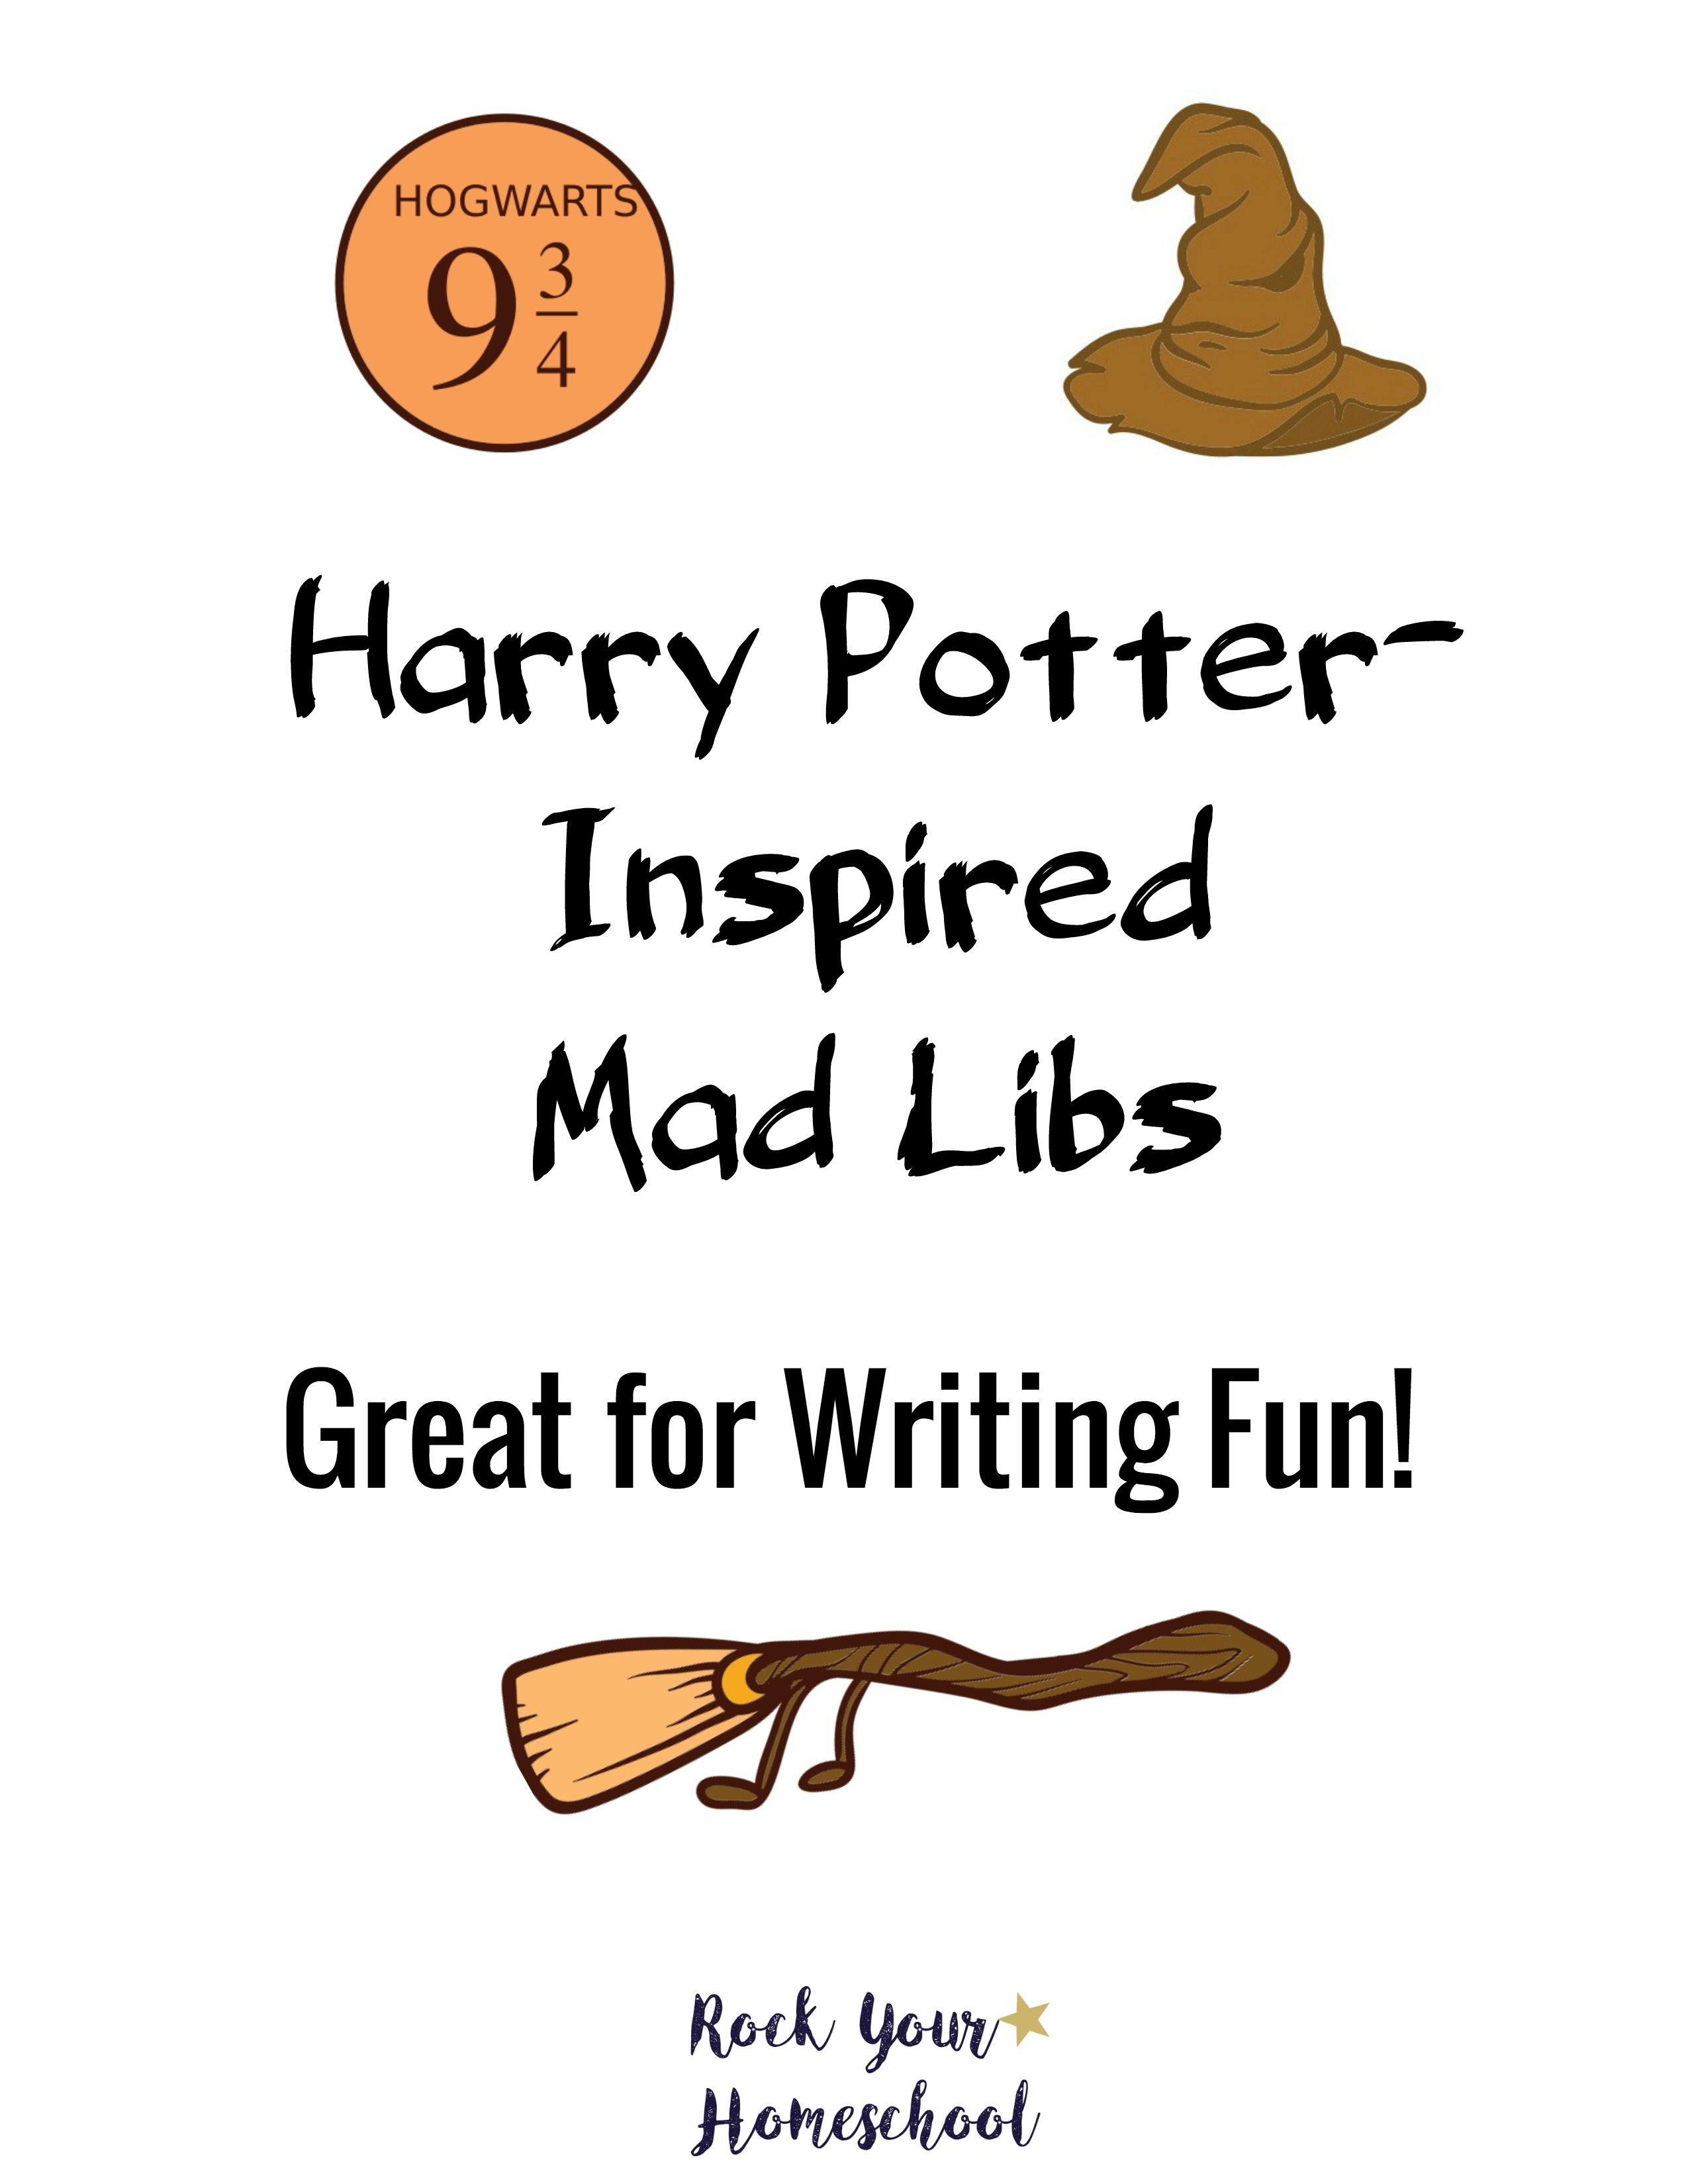 Harry Potter Inspired Mad Libs Writing Fun